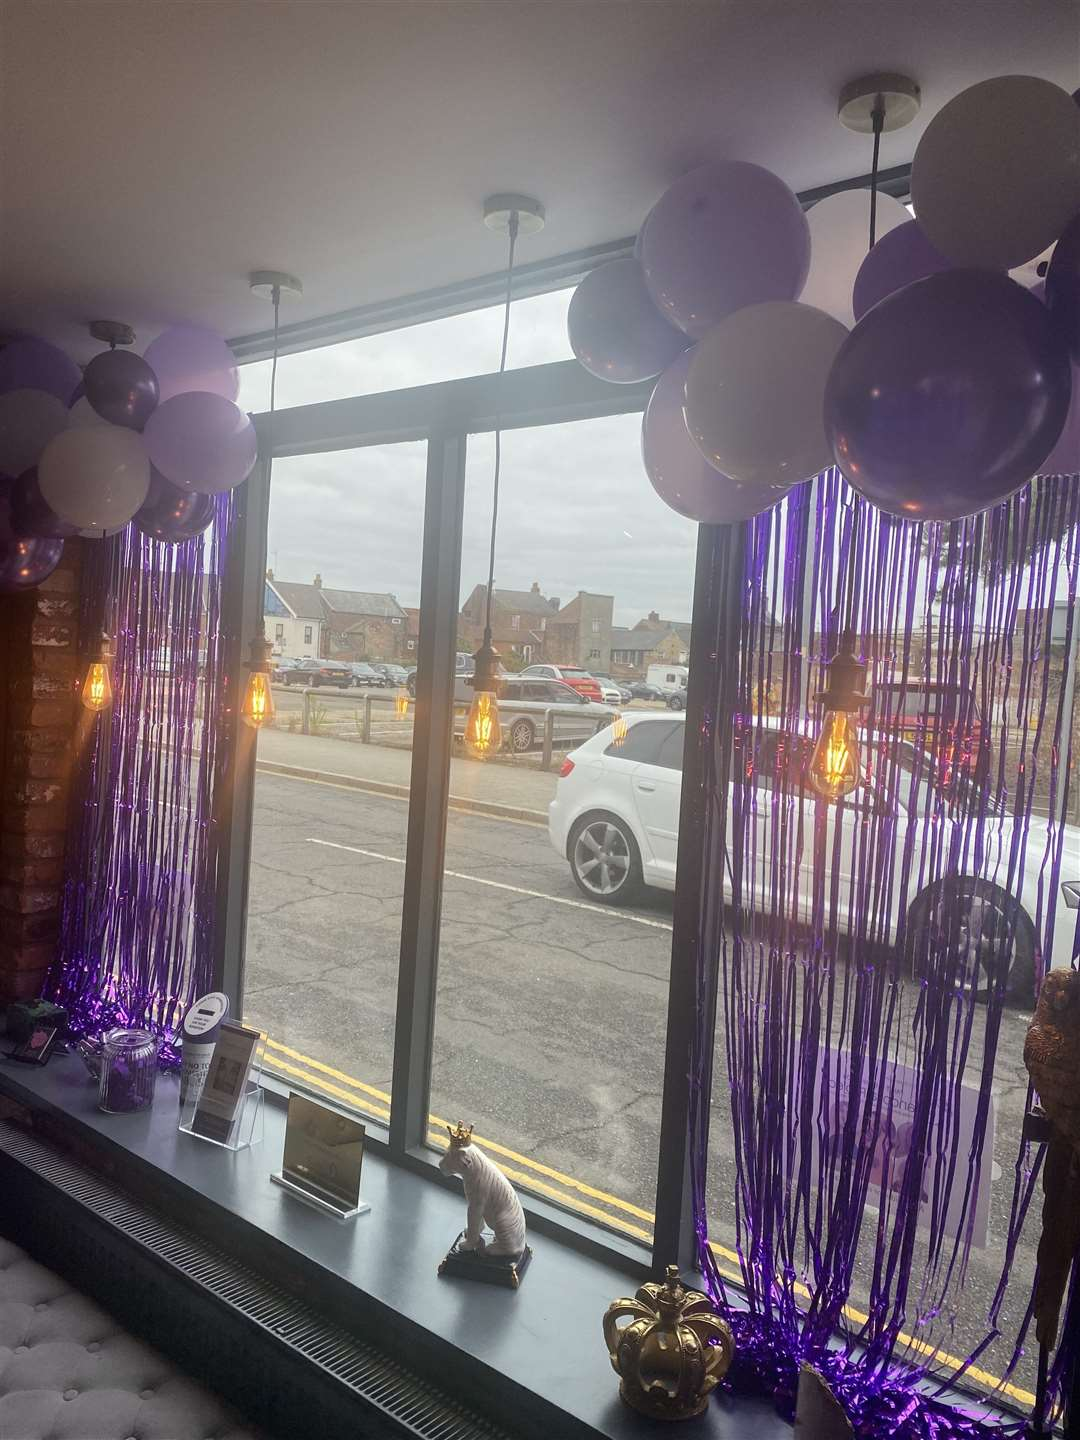 Purfleet Studio hair and beauty salon have a purple window display to highlight awareness of domestic abuse charity Pandora Project. (50799078)